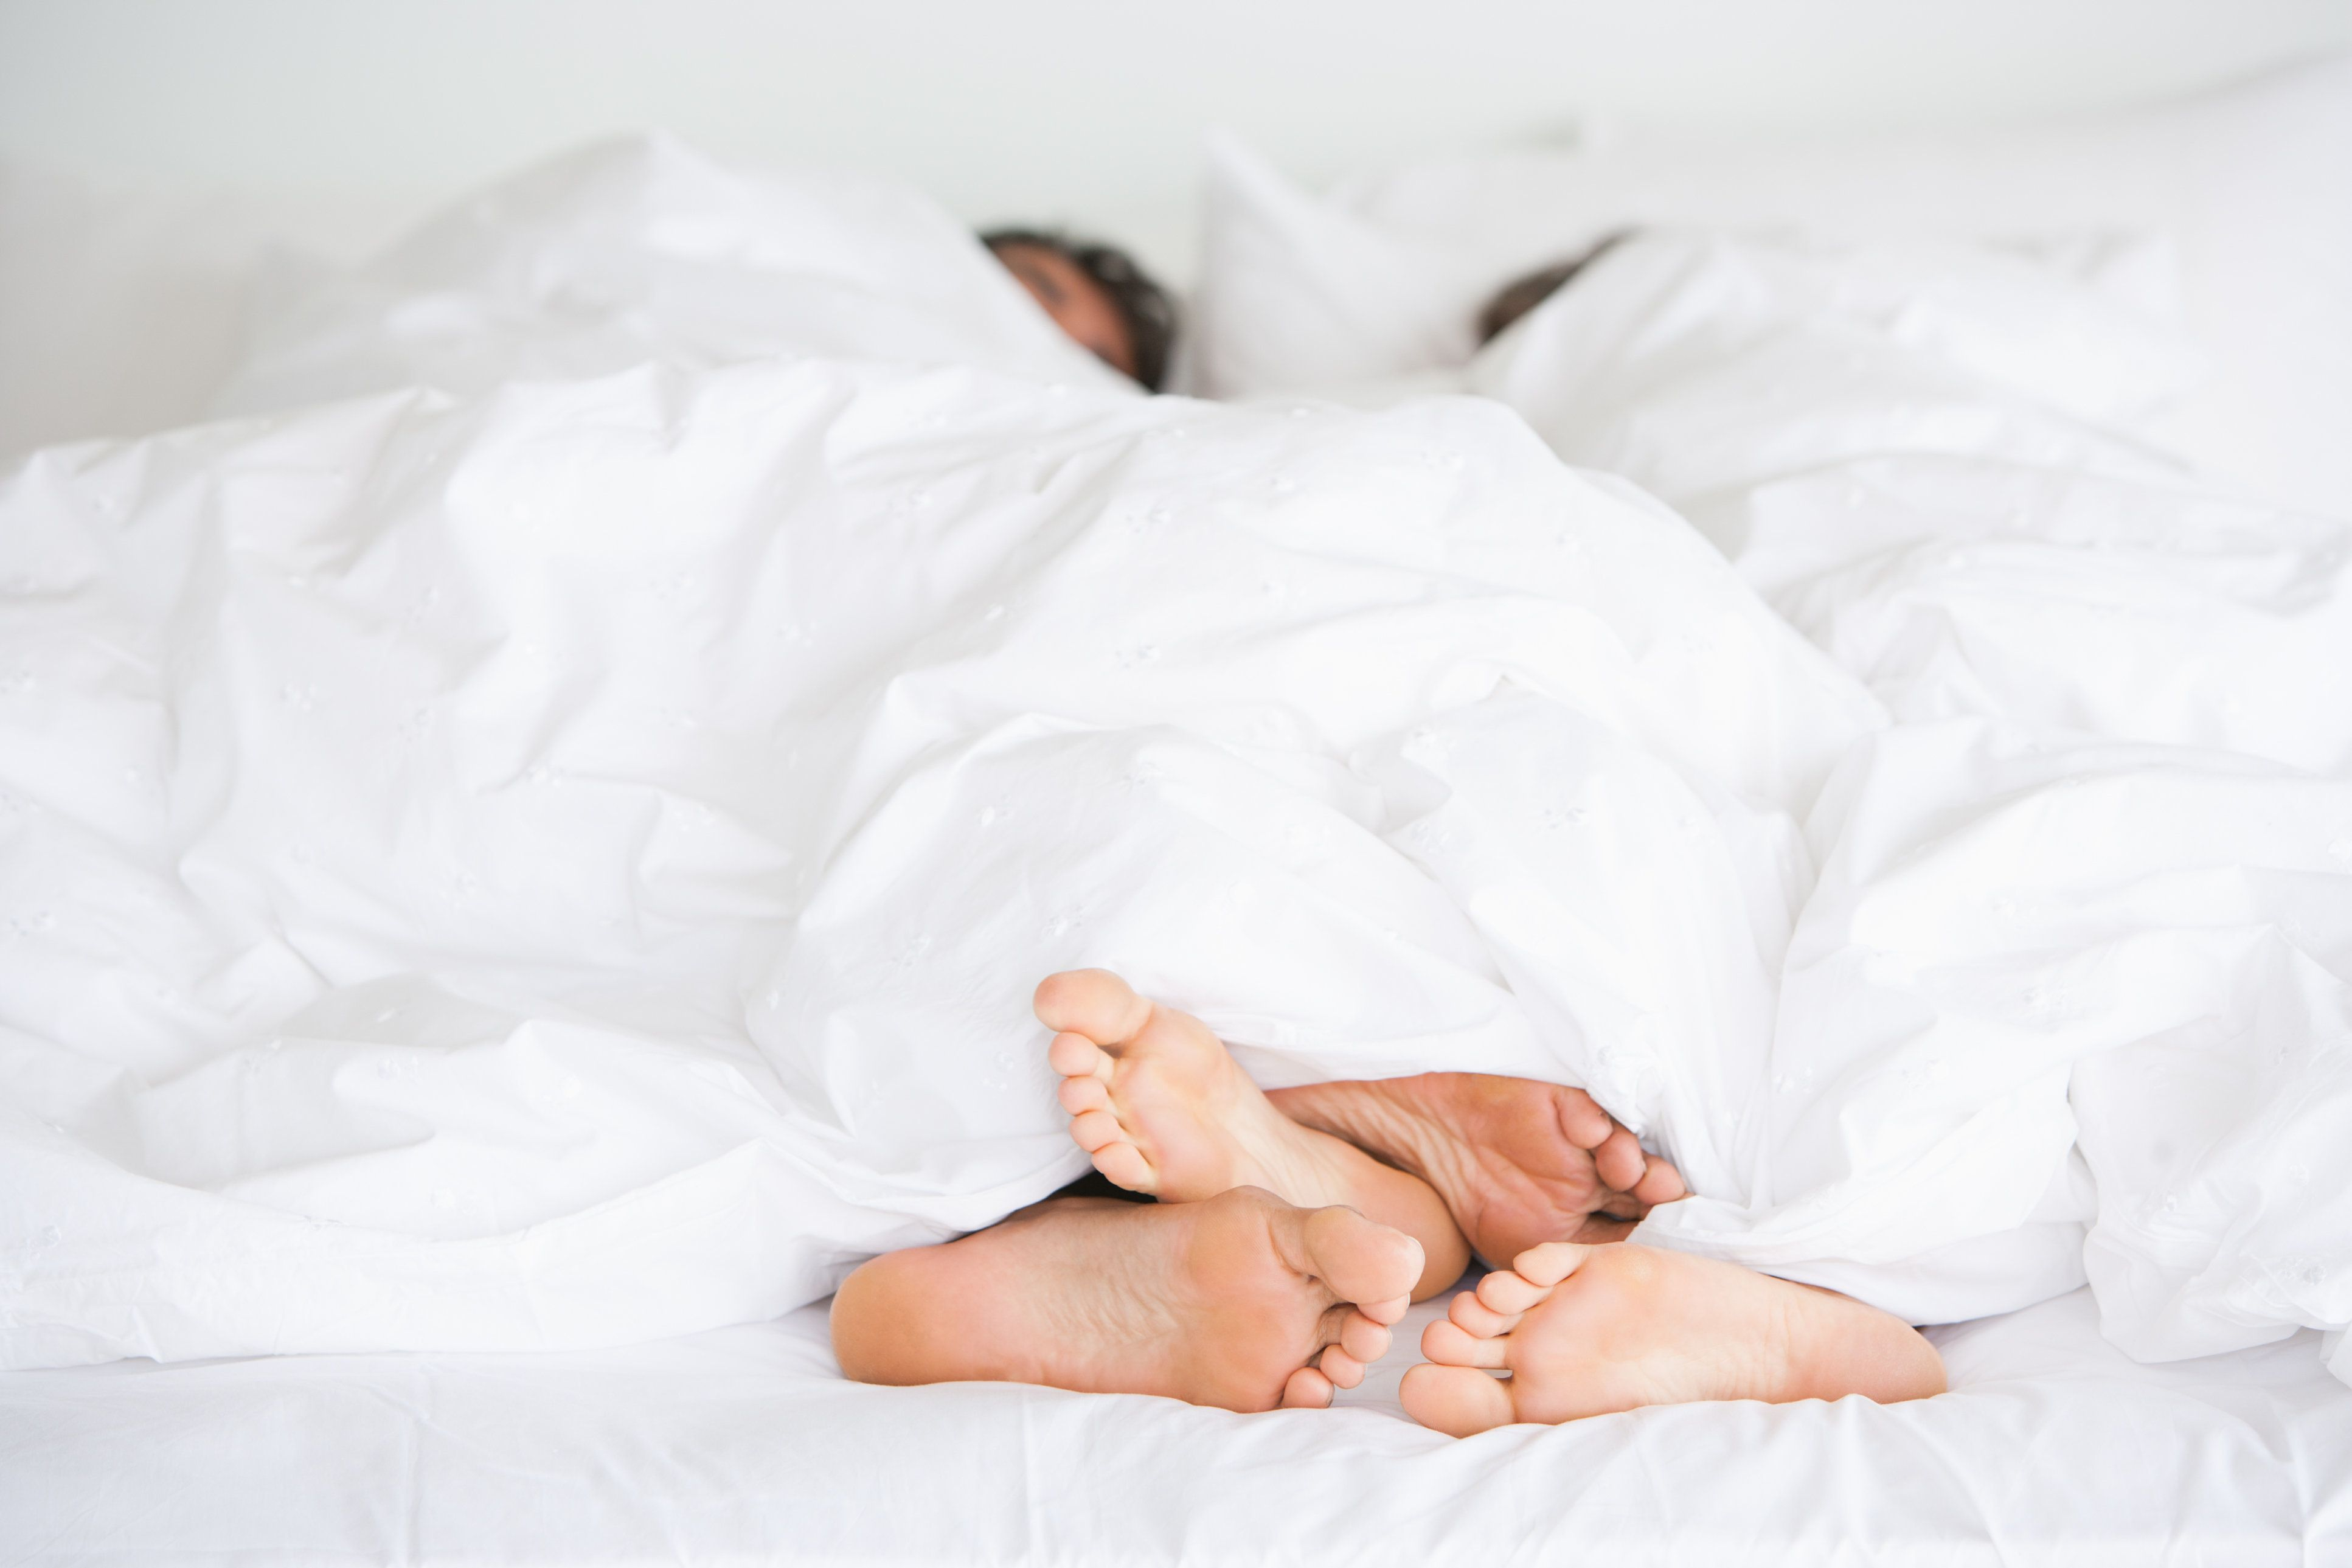 12 Stages Of The Morning After Sex The Night